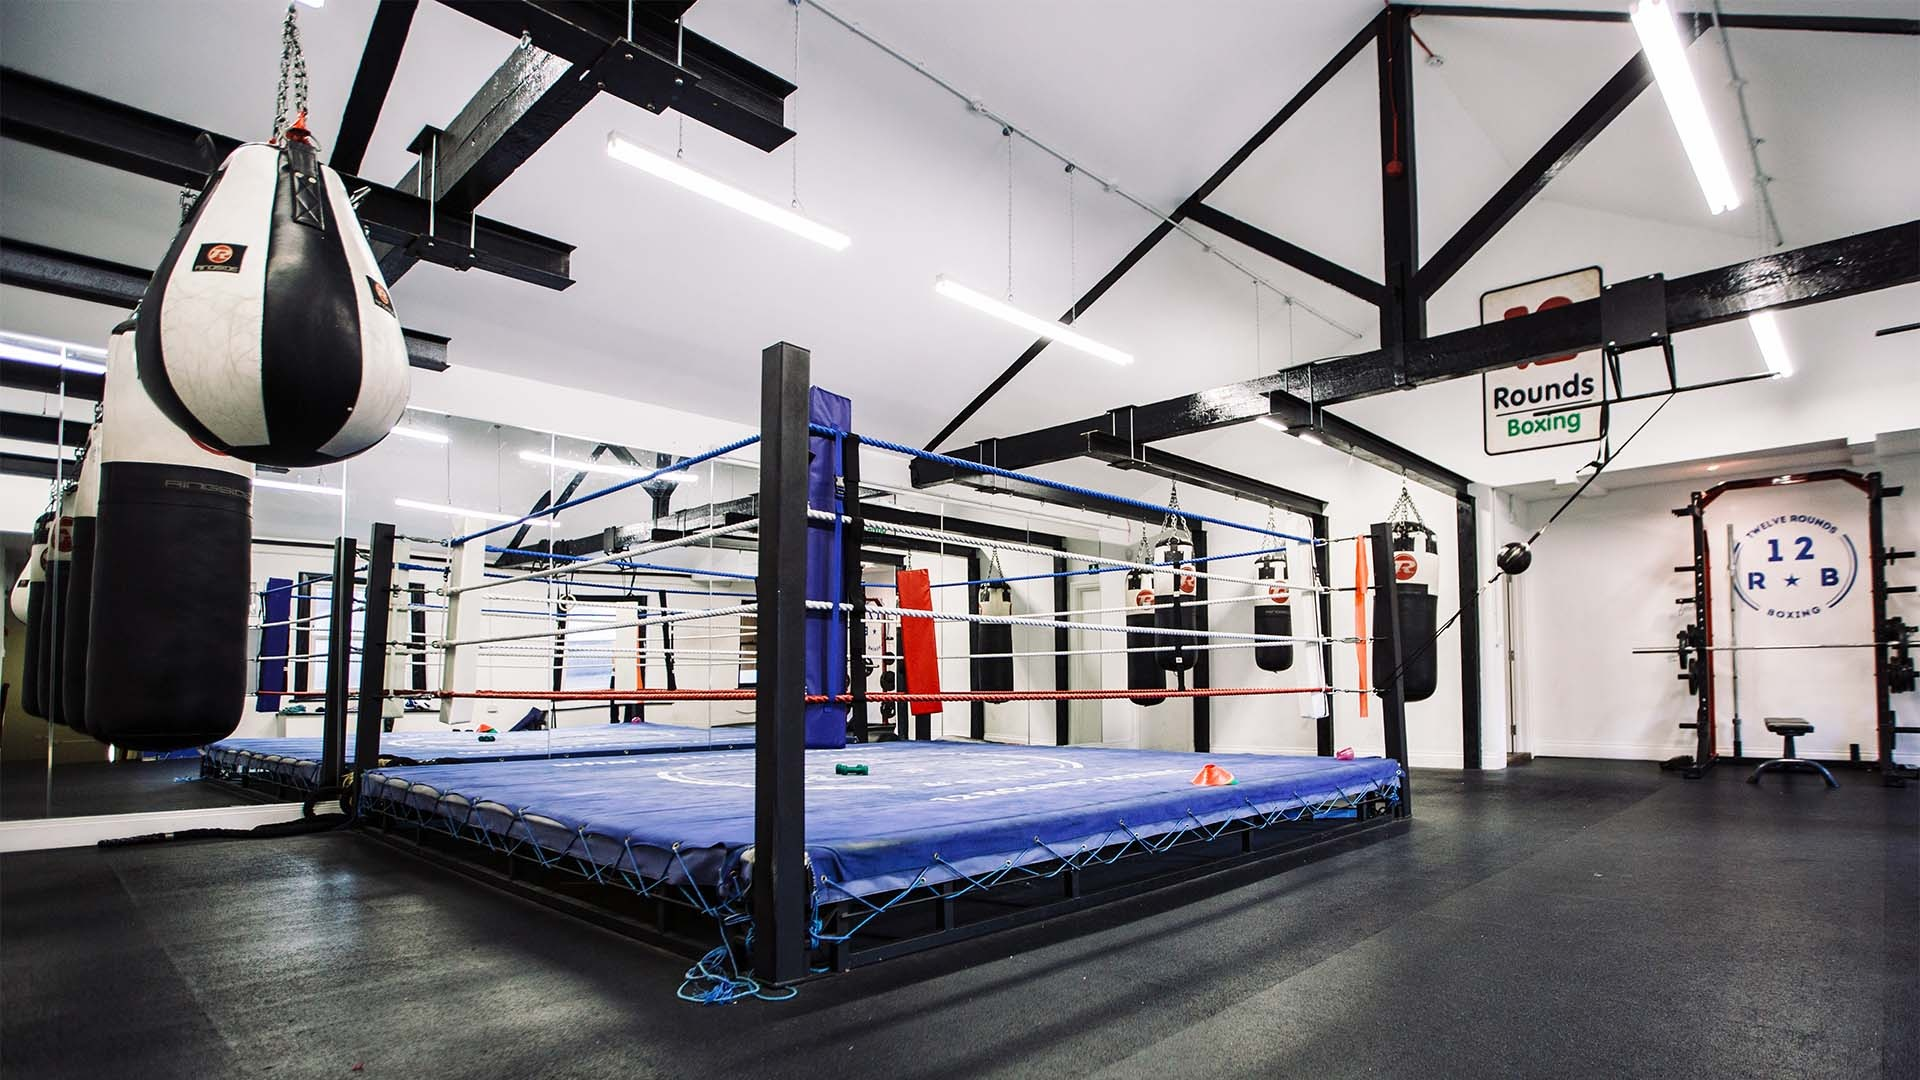 Boxing Club London 12 Rounds Clapham Junction